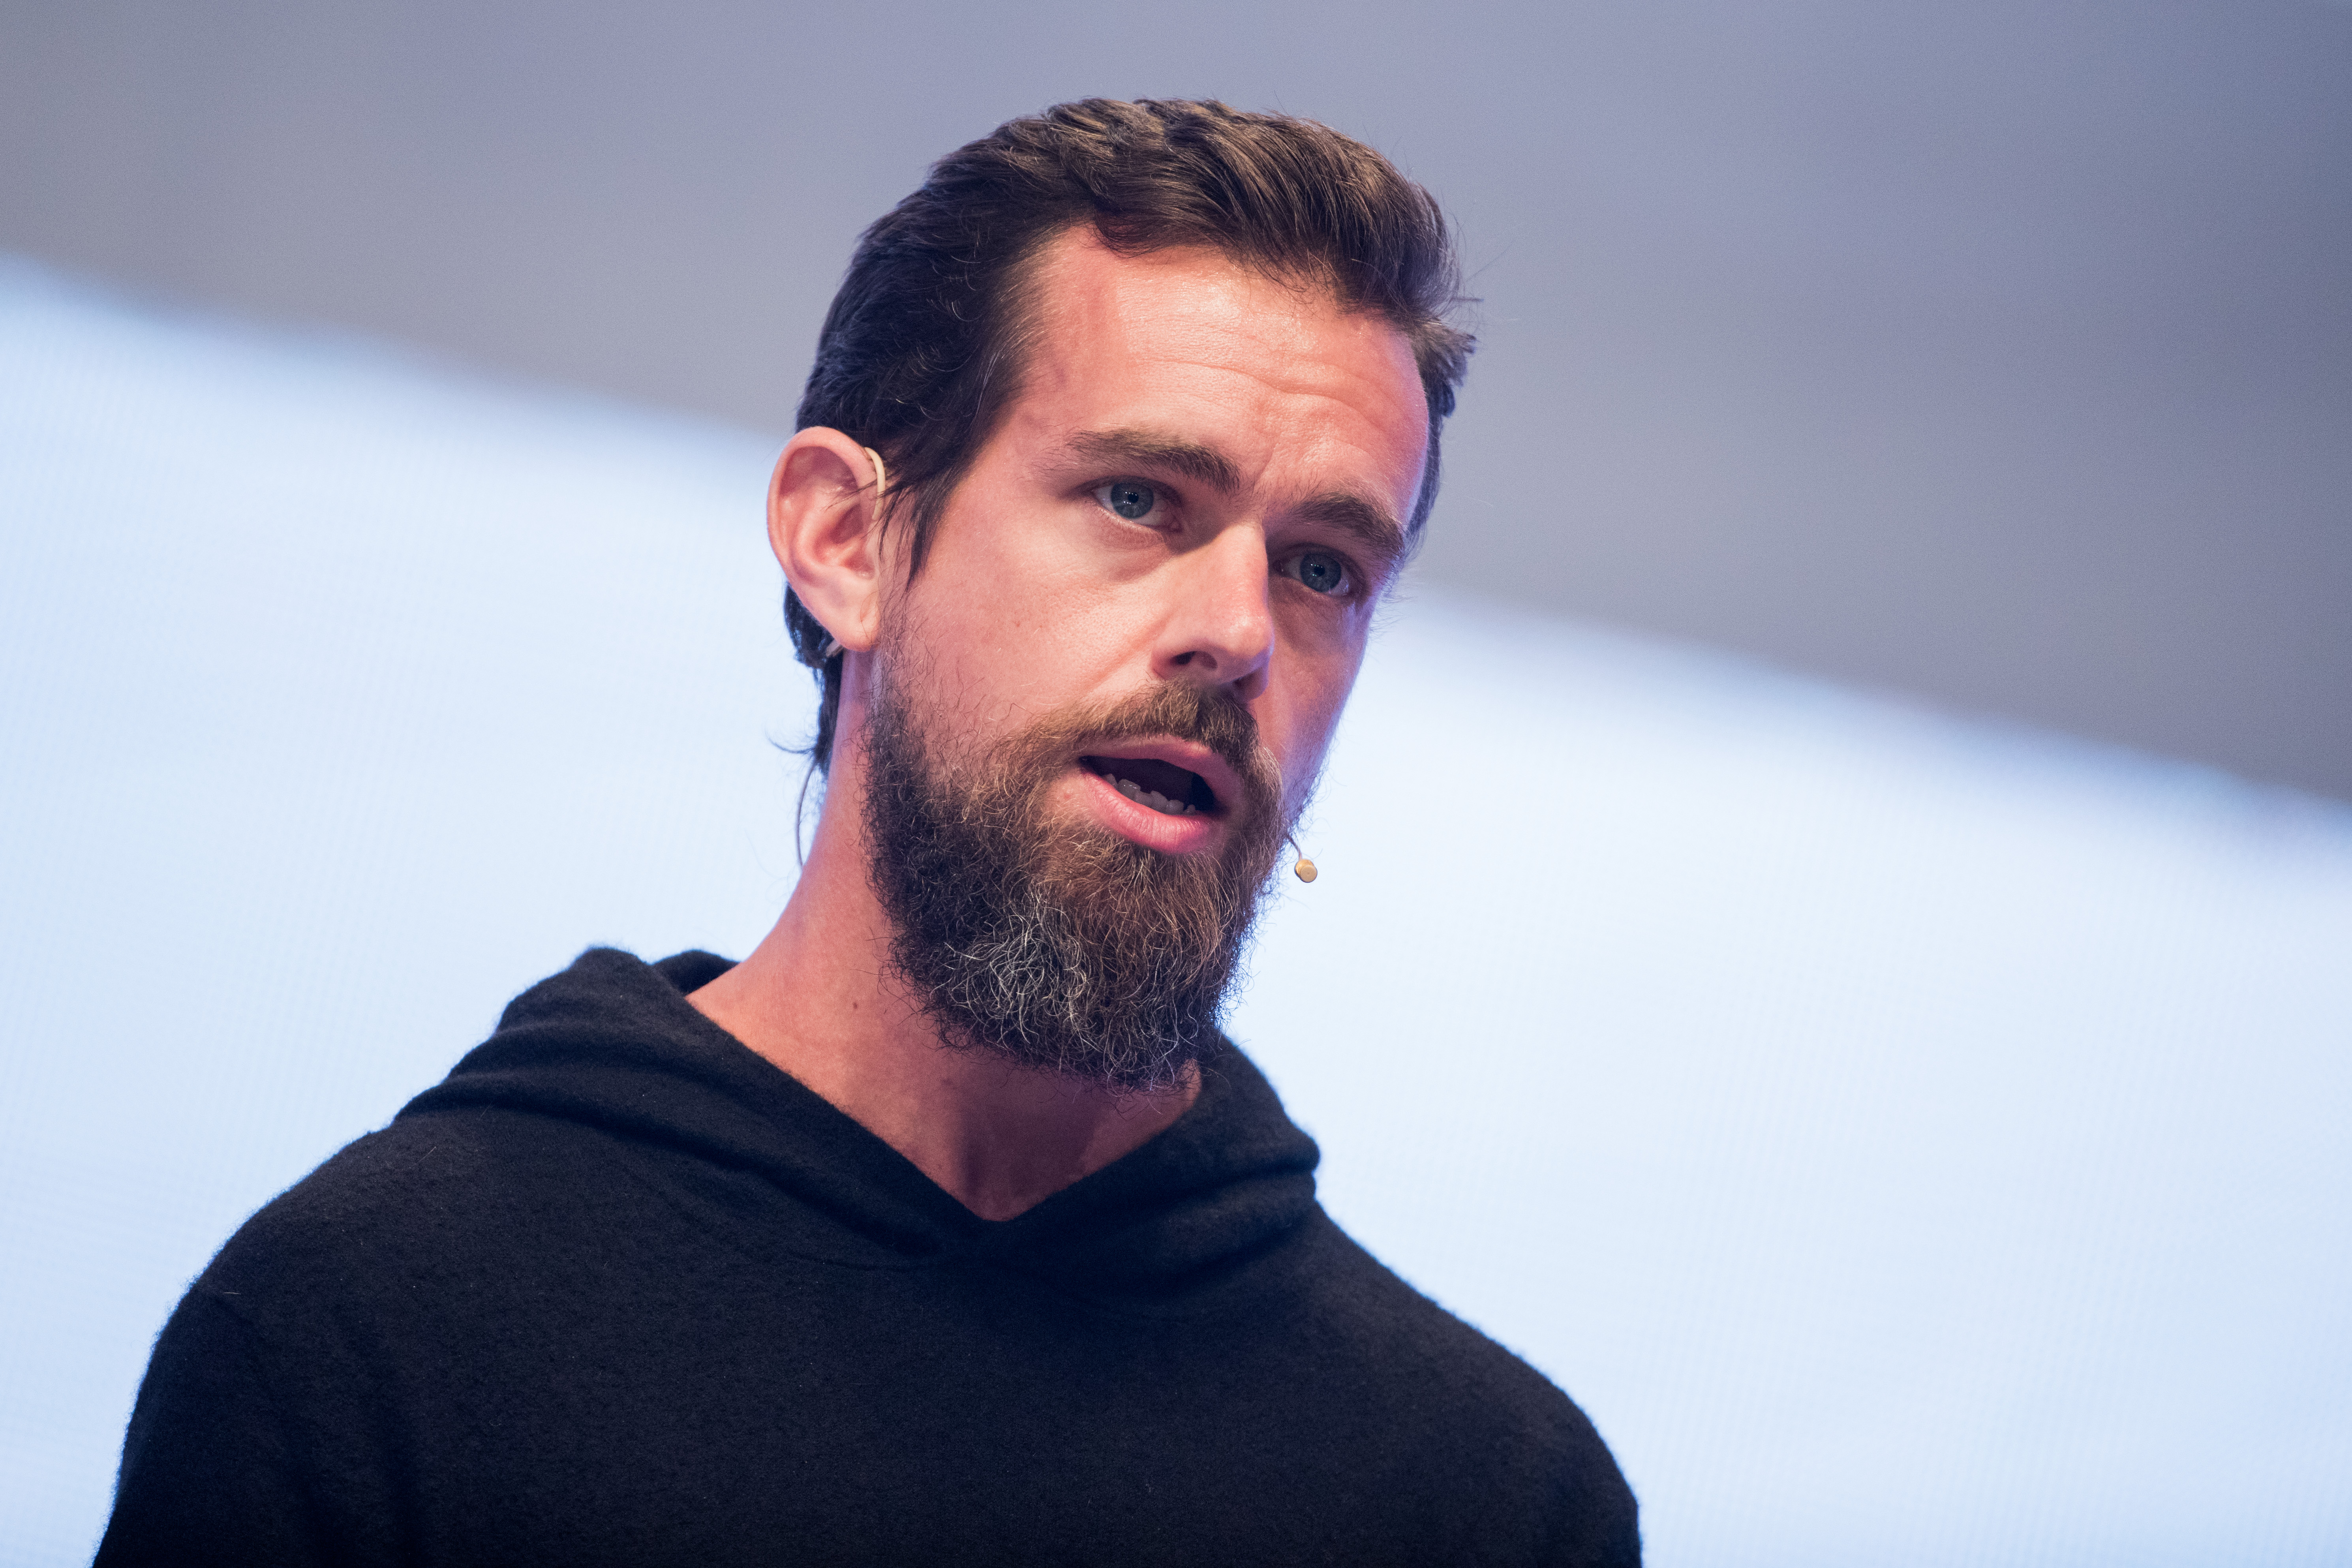 Jack Dorsey, CEO of Twitter is pictured at the digital fair dmexco in Cologne, Germany, on Sept. 13, 2017.